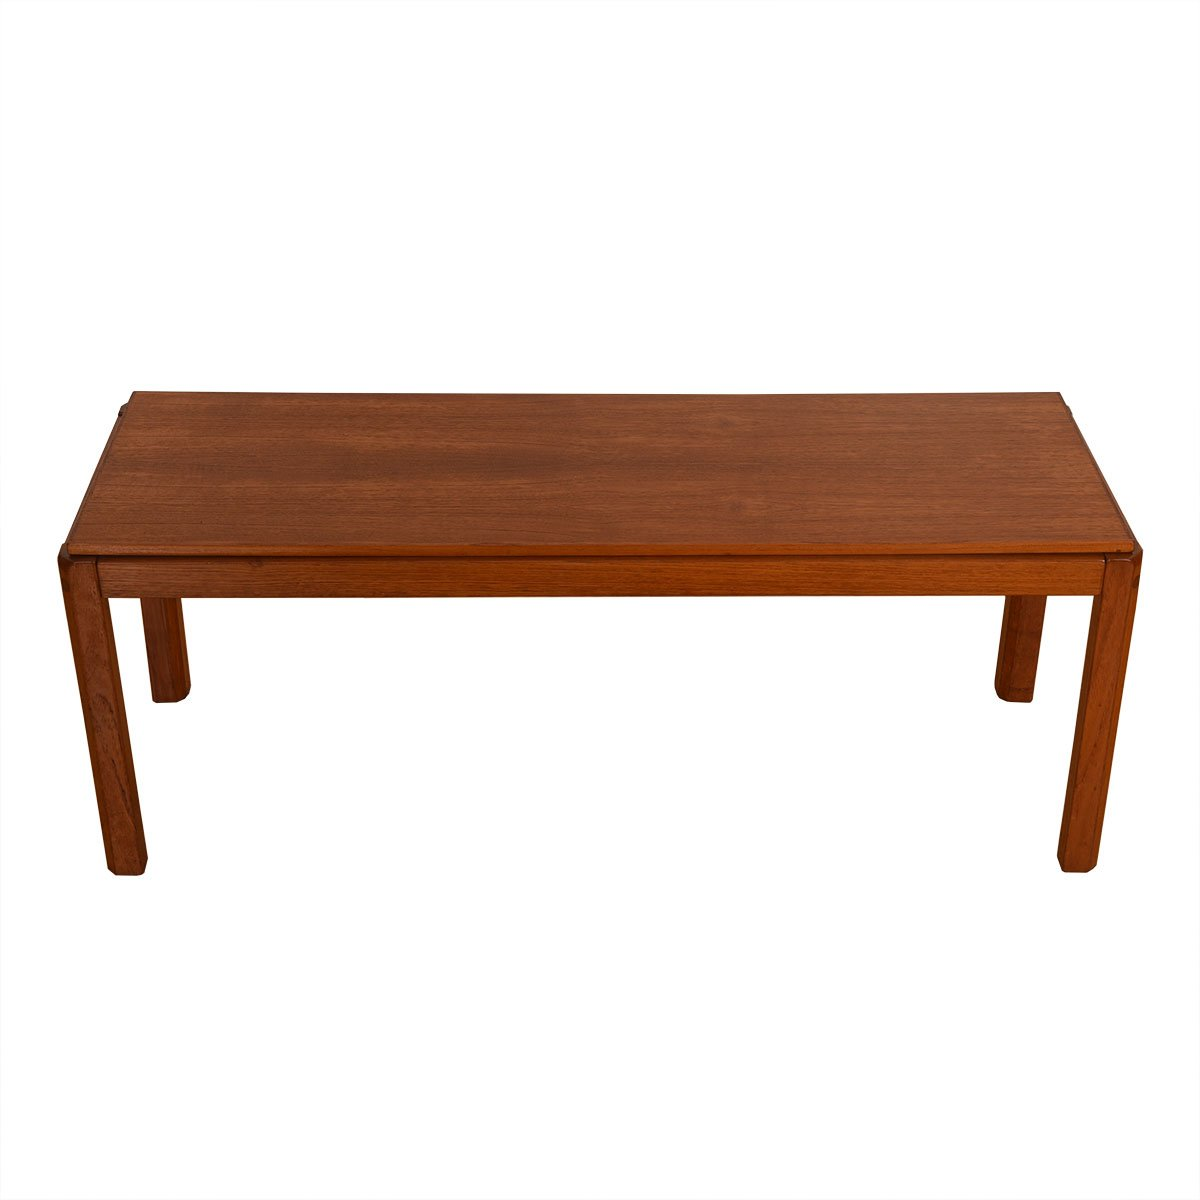 Apartment Sized Danish Teak Coffee Table w/ Beveled Legs.